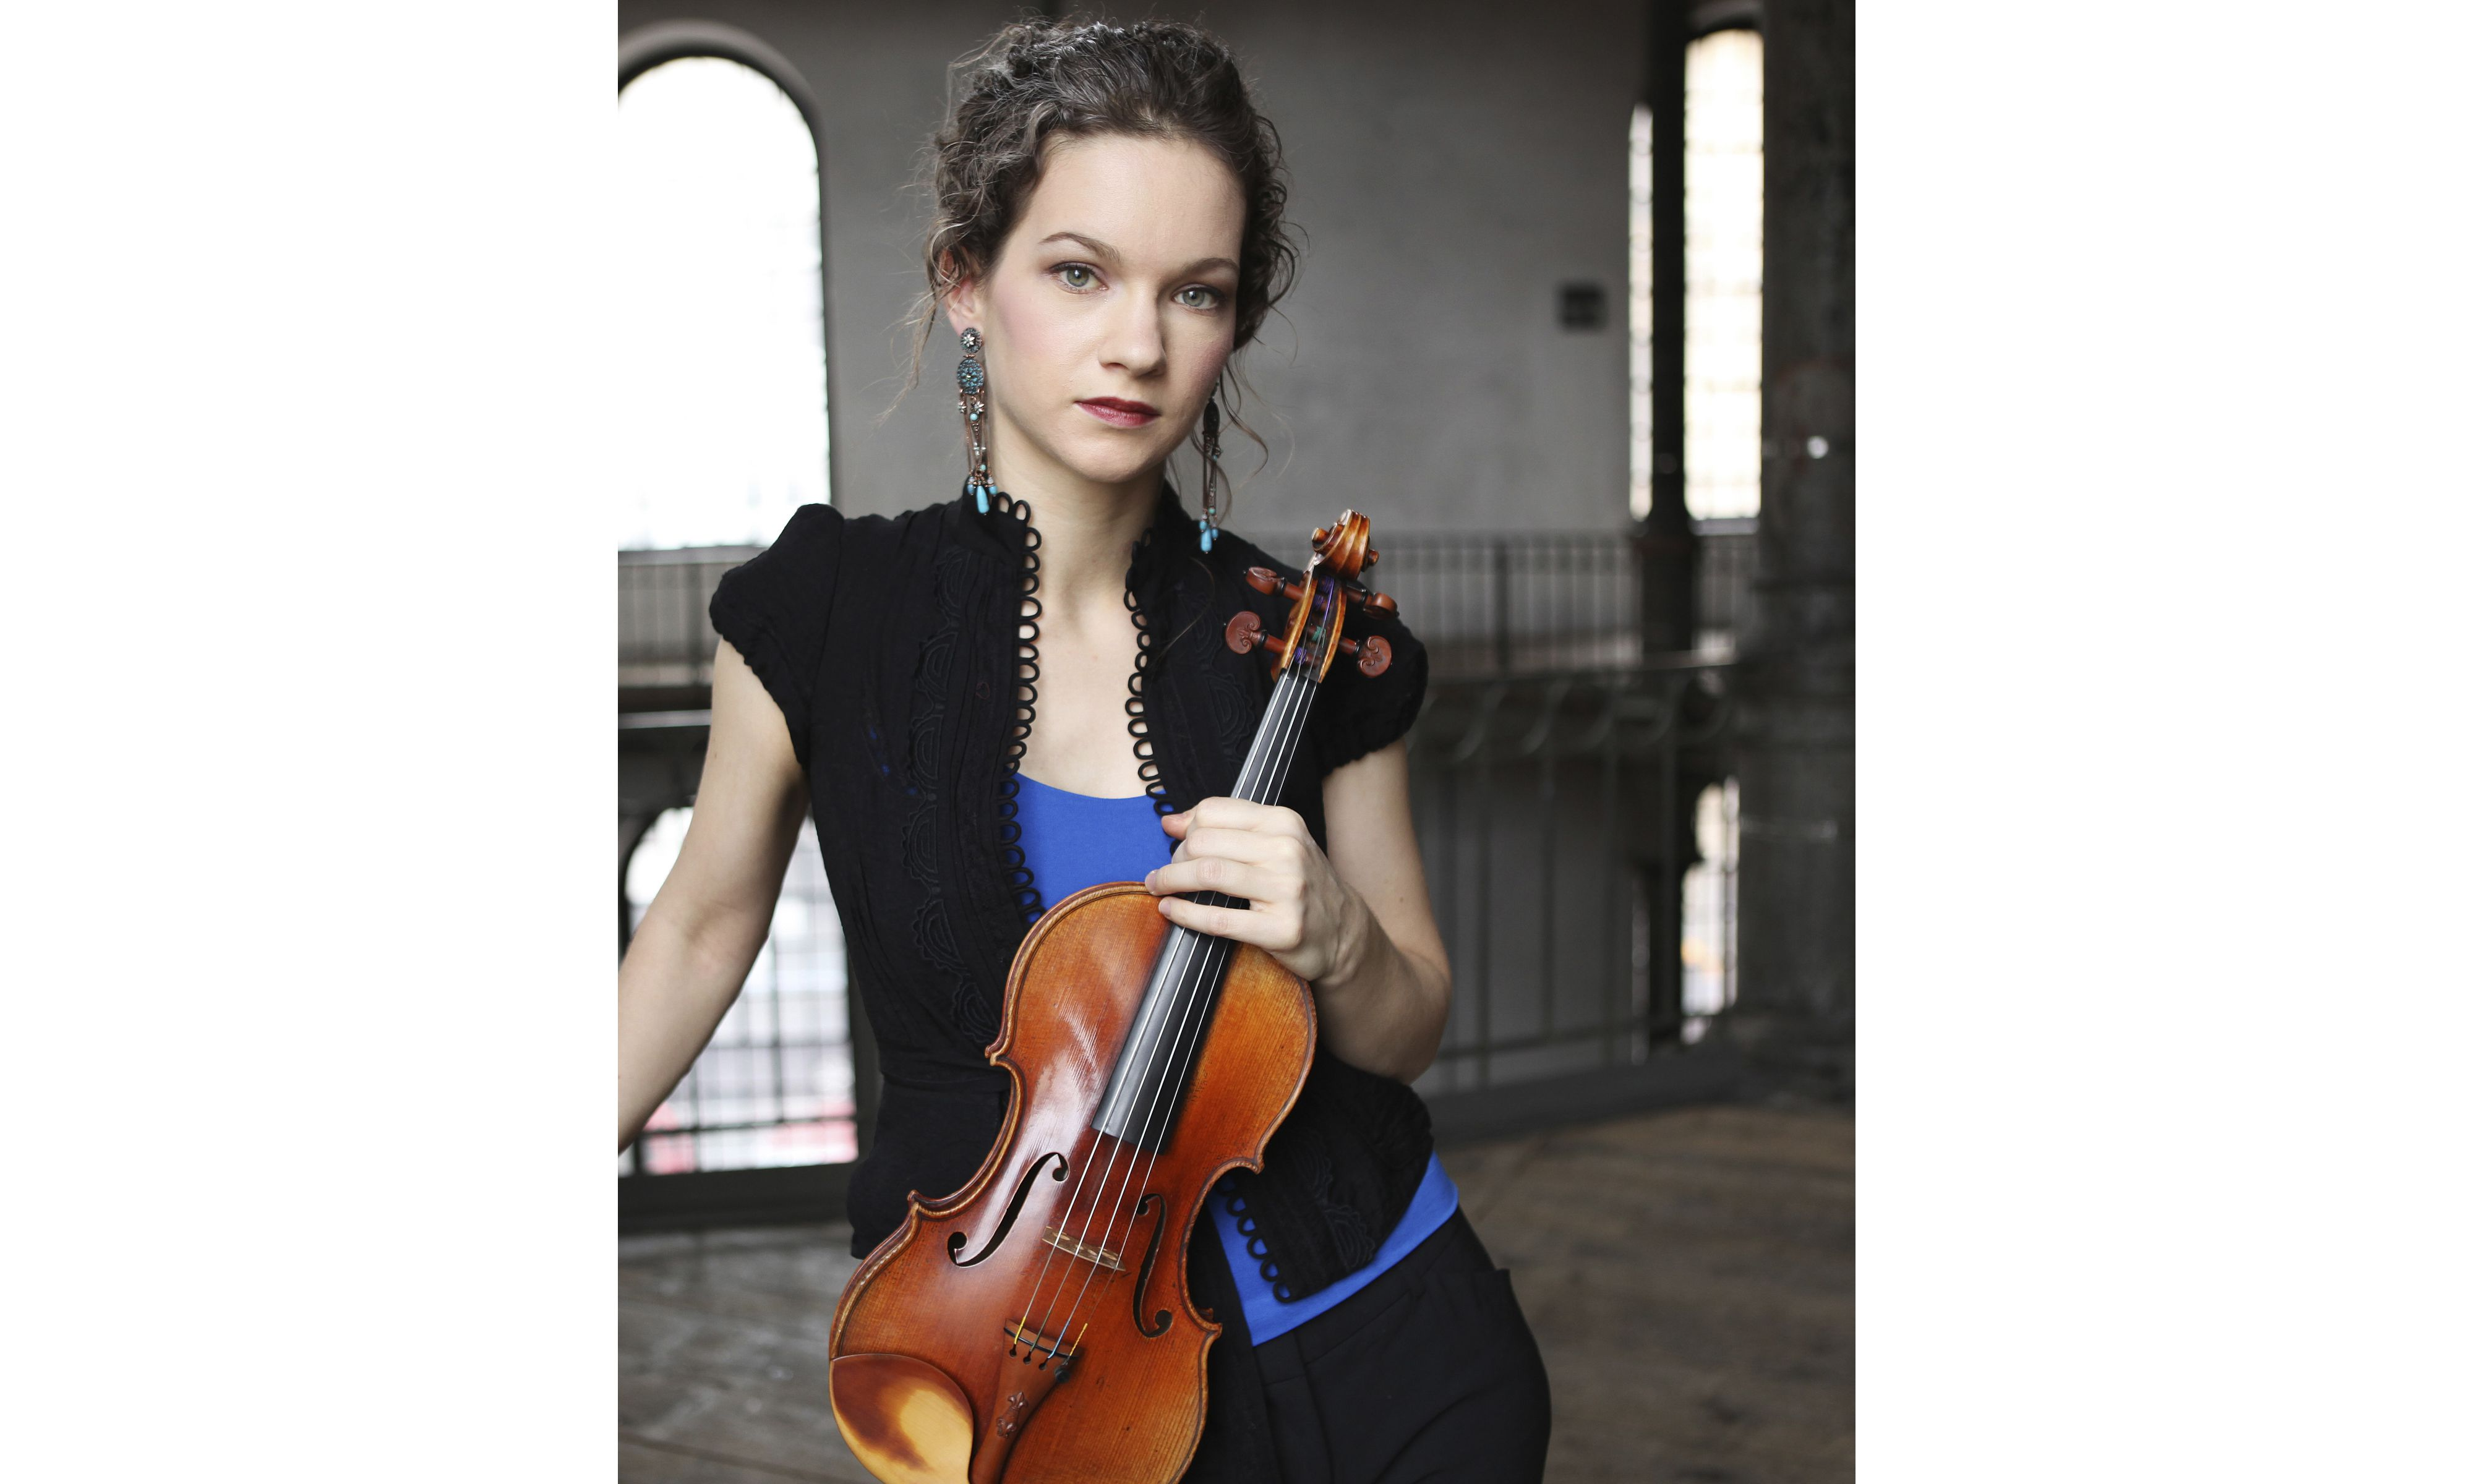 (Courtesy photo) Violinist Hilary Hahn is scheduled to perform with the Utah Symphony — Sept. 16, 2021, at Orem's Noorda Center for the Performing Arts, and Sept. 17-18, 2021, at Abravanel Hall in Salt Lake City.